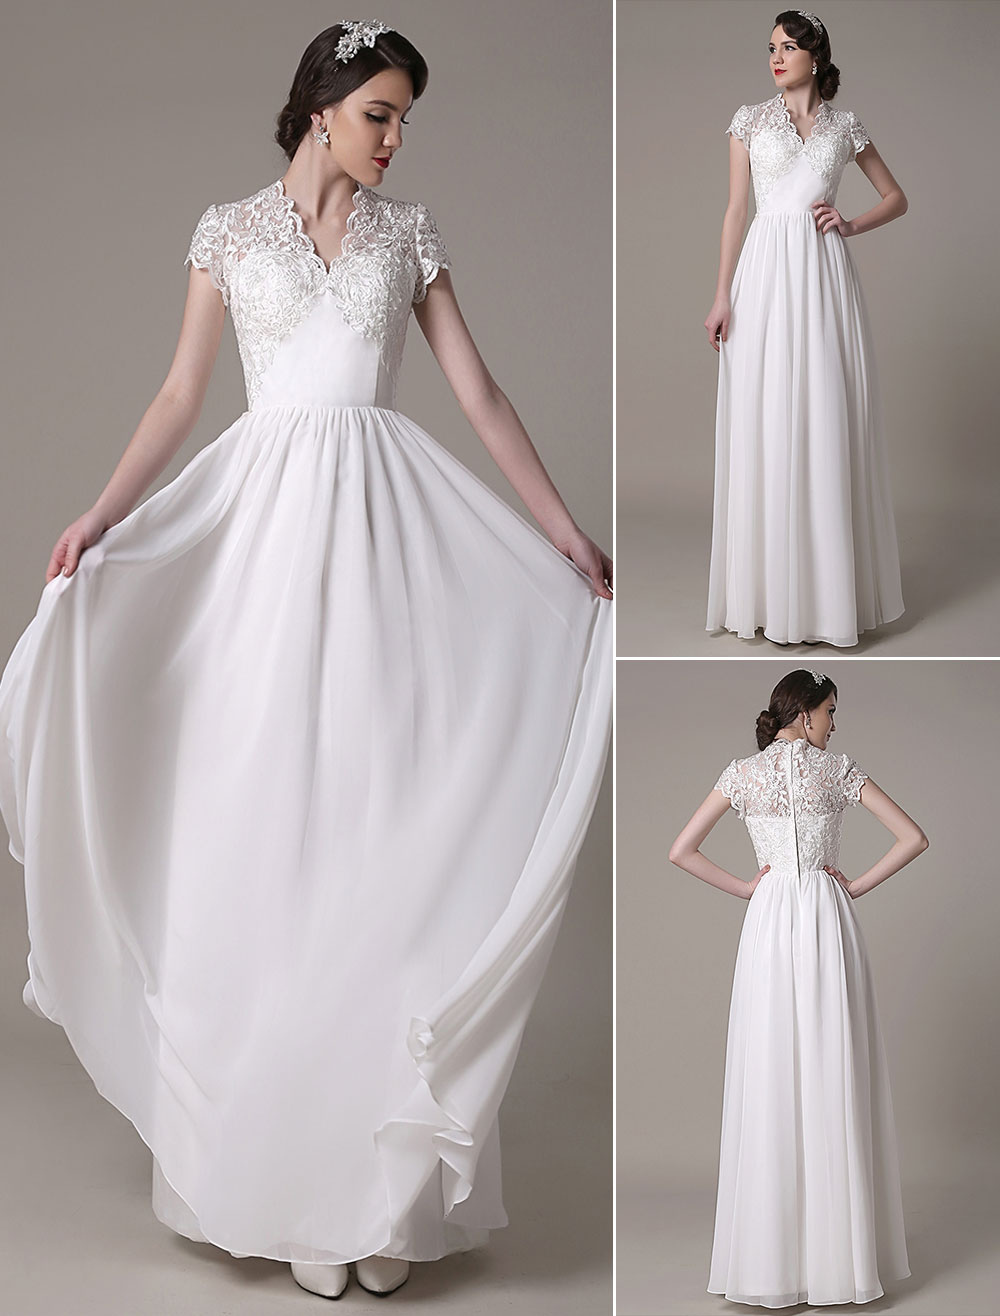 Sheath Wedding Dress V-Neck Lace Chiffon Pleated Floor Length Bridal Dress Milanoo